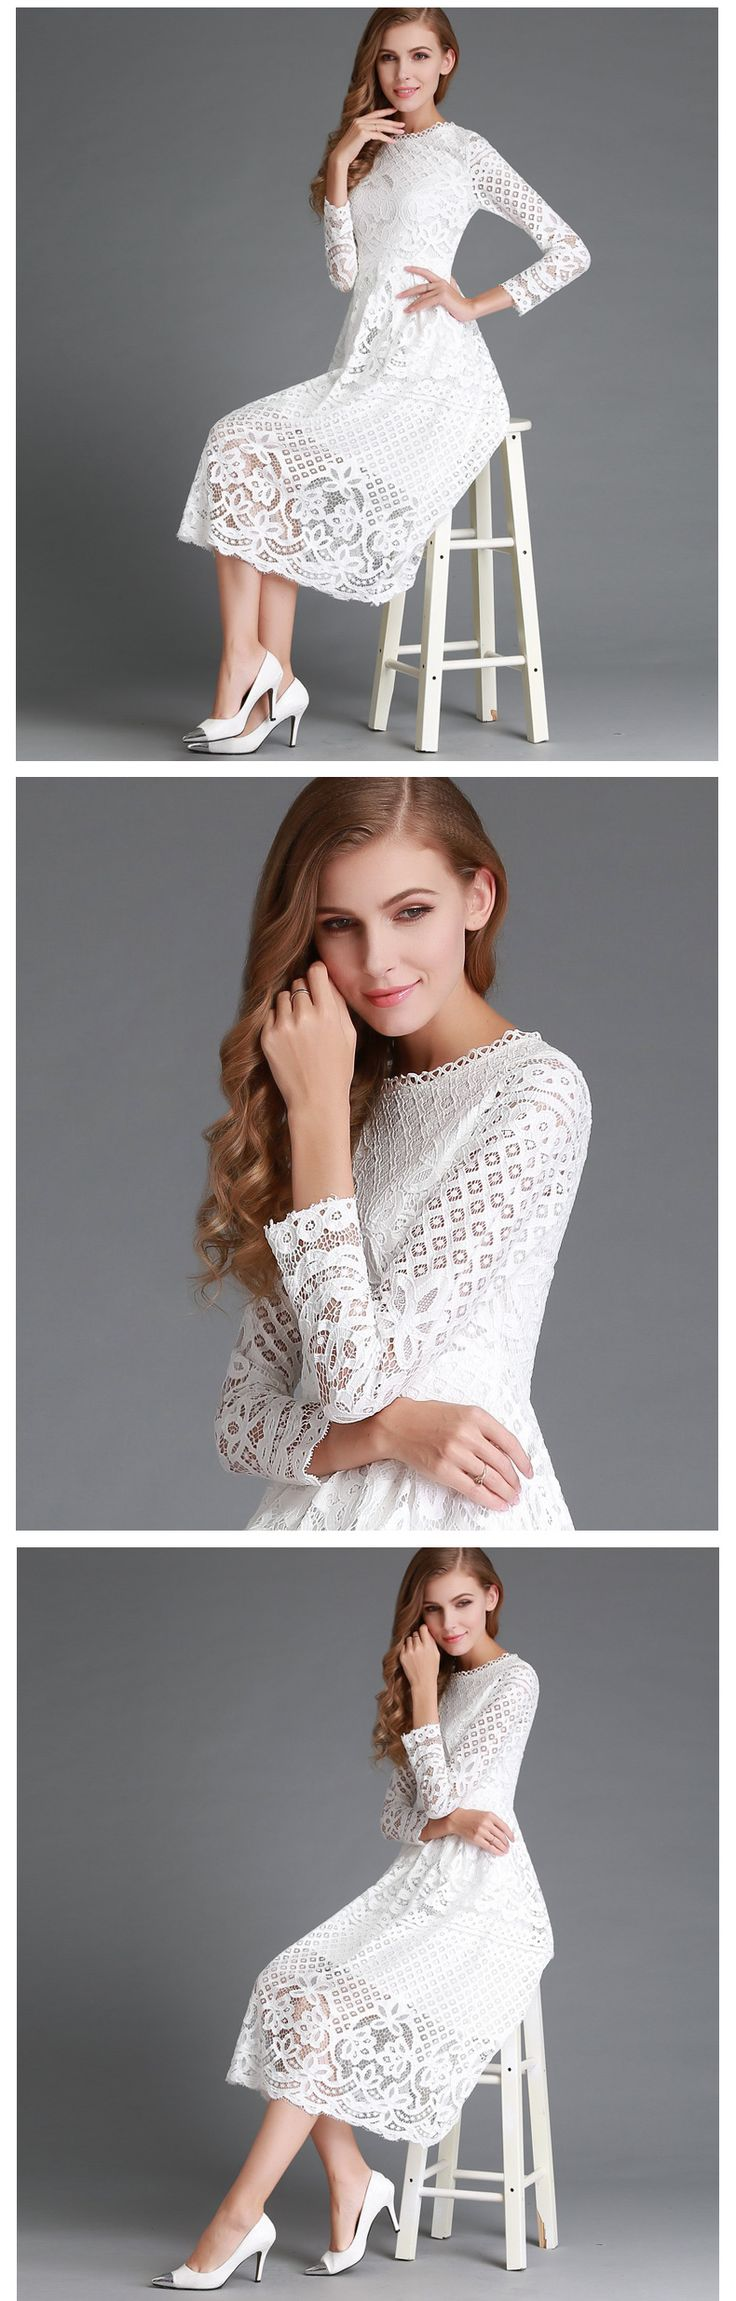 Spring Women's Lace Hollow Out Long Dresses